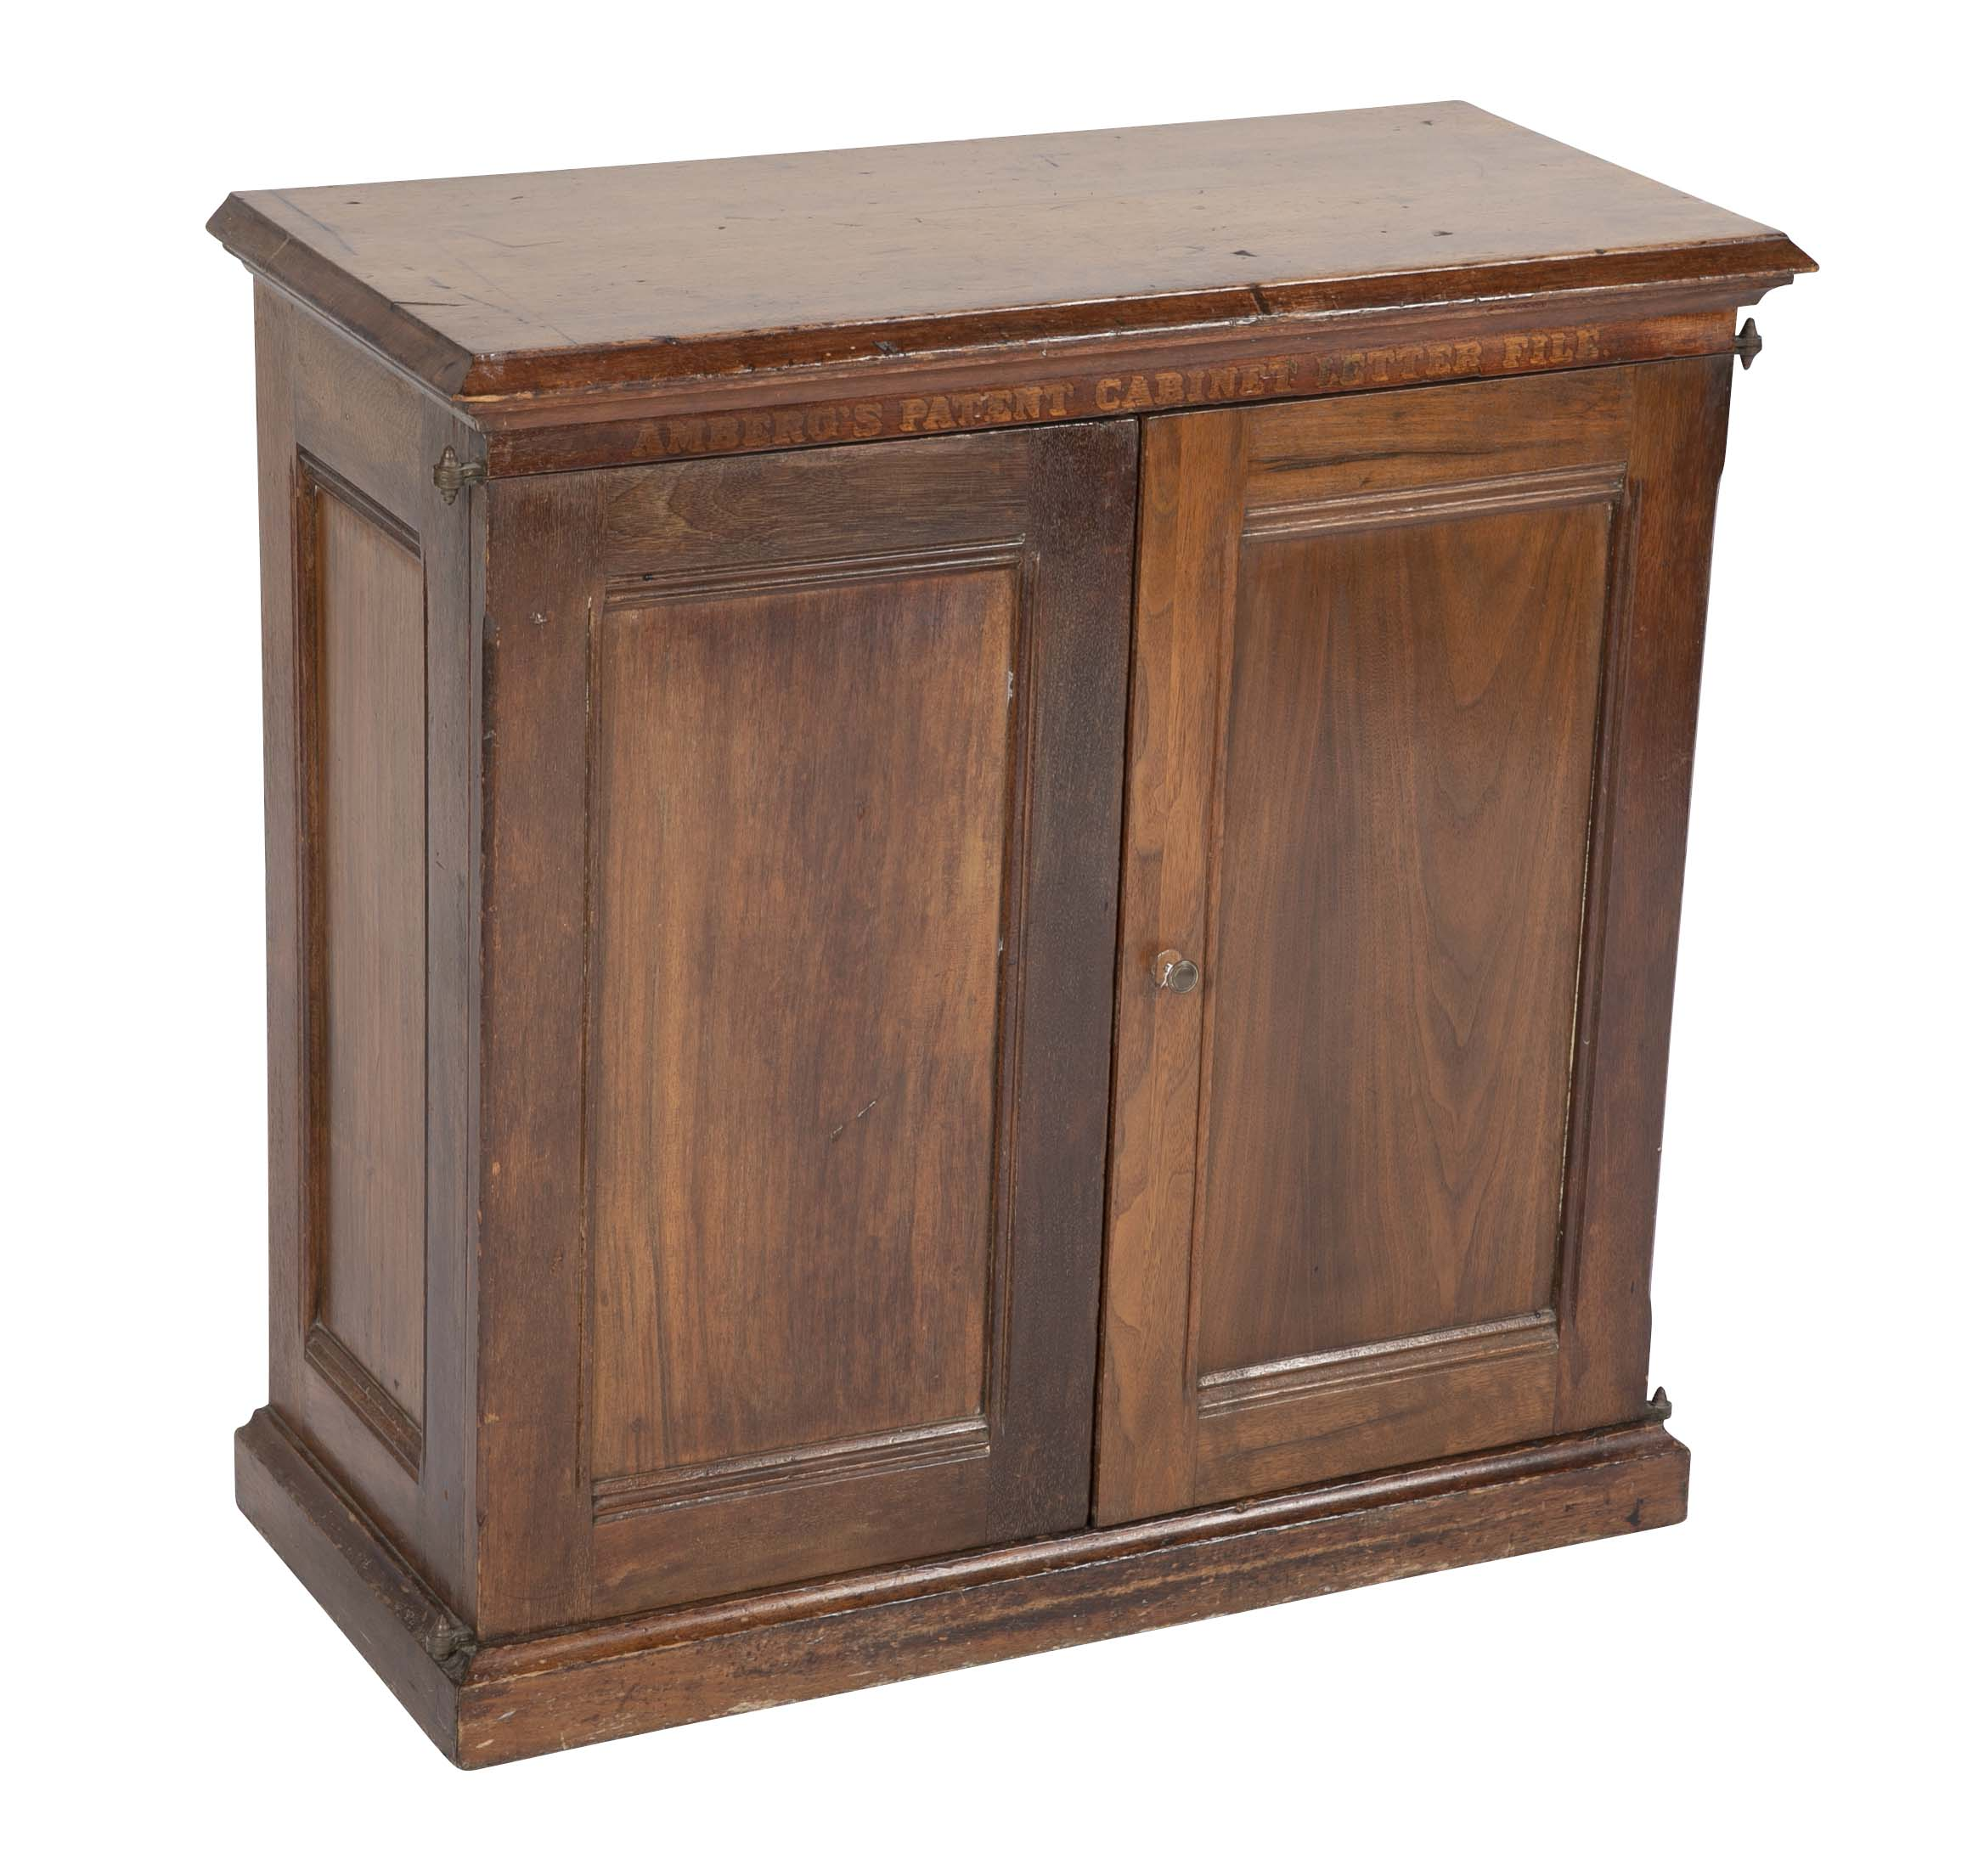 Shipyard Working Cabinet from Thames Tow Boatyard, New London, CT